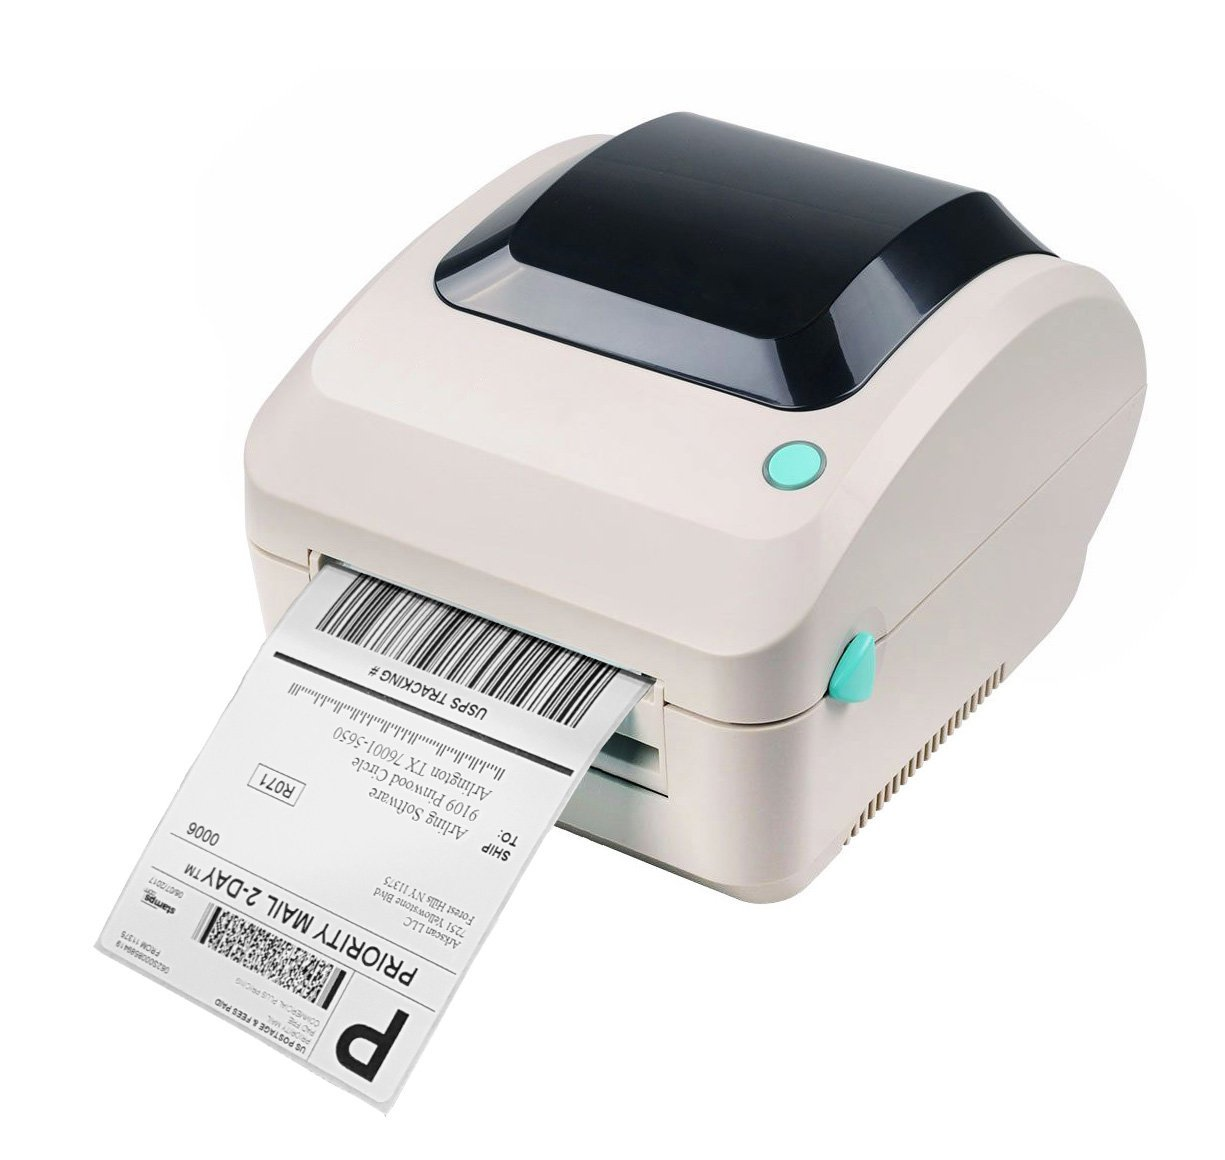 hight resolution of this printer can be used to print out ups usps fedex and other shipping labels supports windows and mac